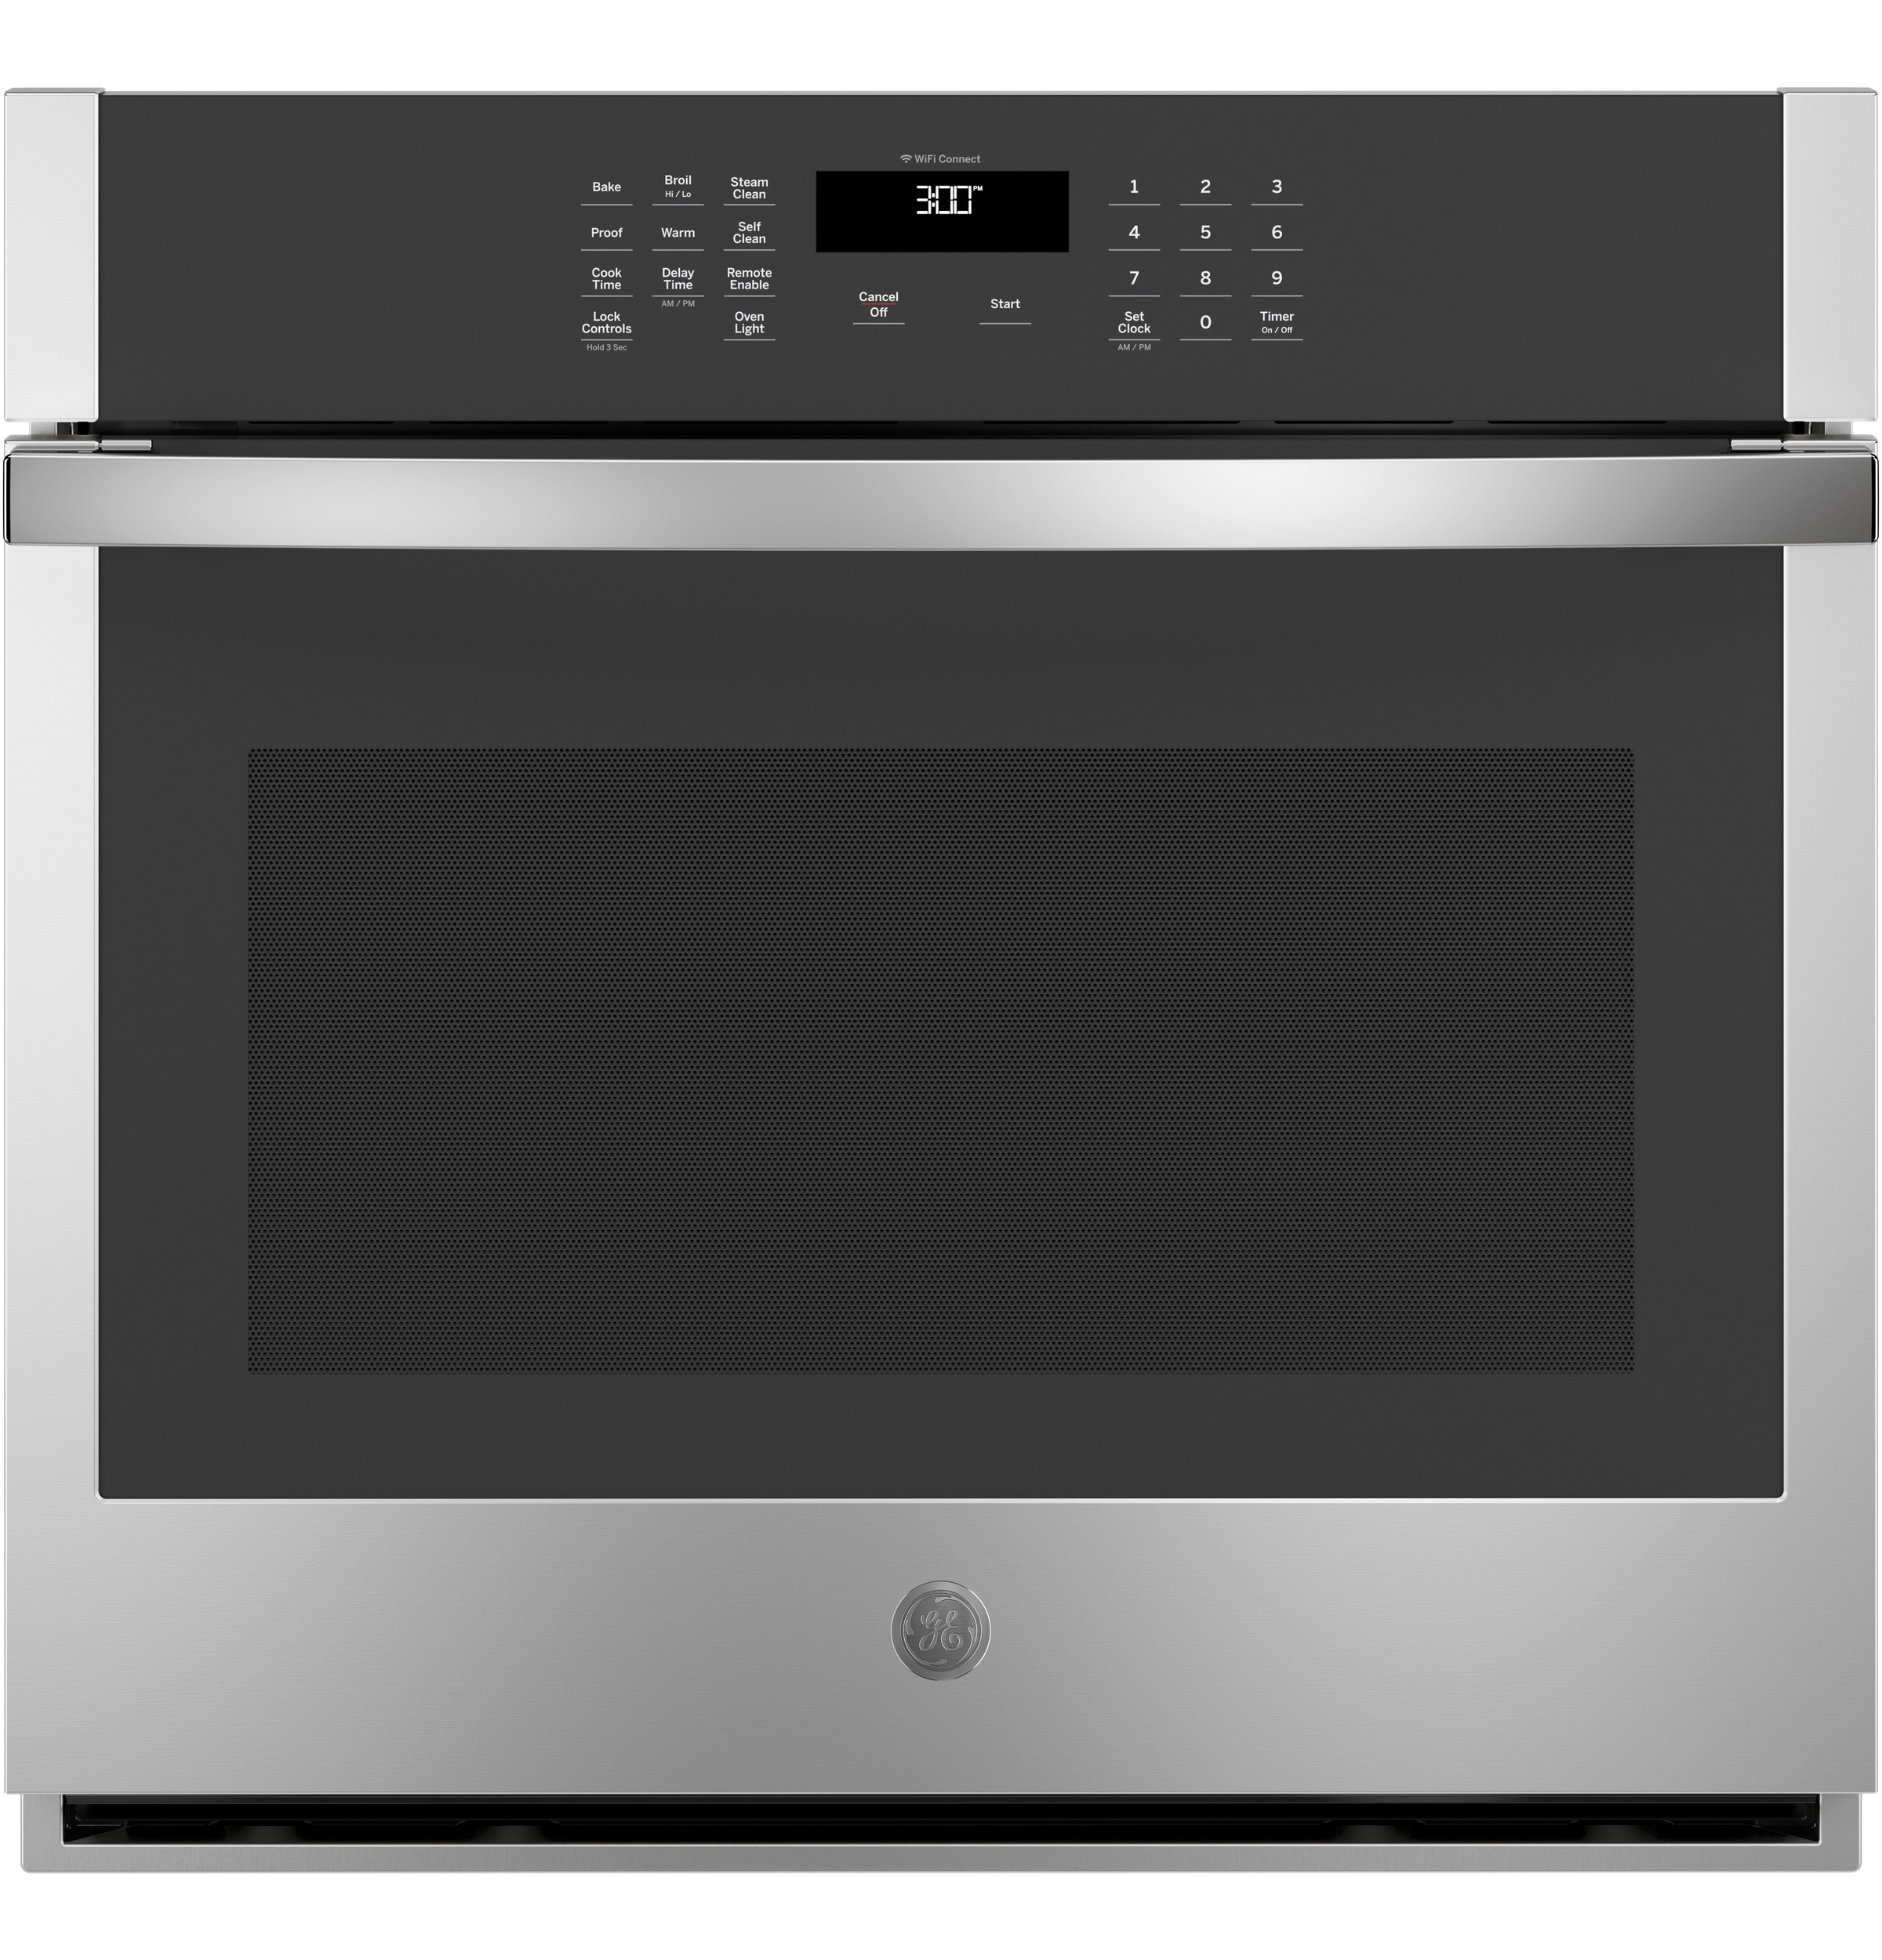 """Image of """"GE JTS3000SNSS 30"""""""" Built-In Wall Oven - Stainless Steel, Stainless steel"""""""